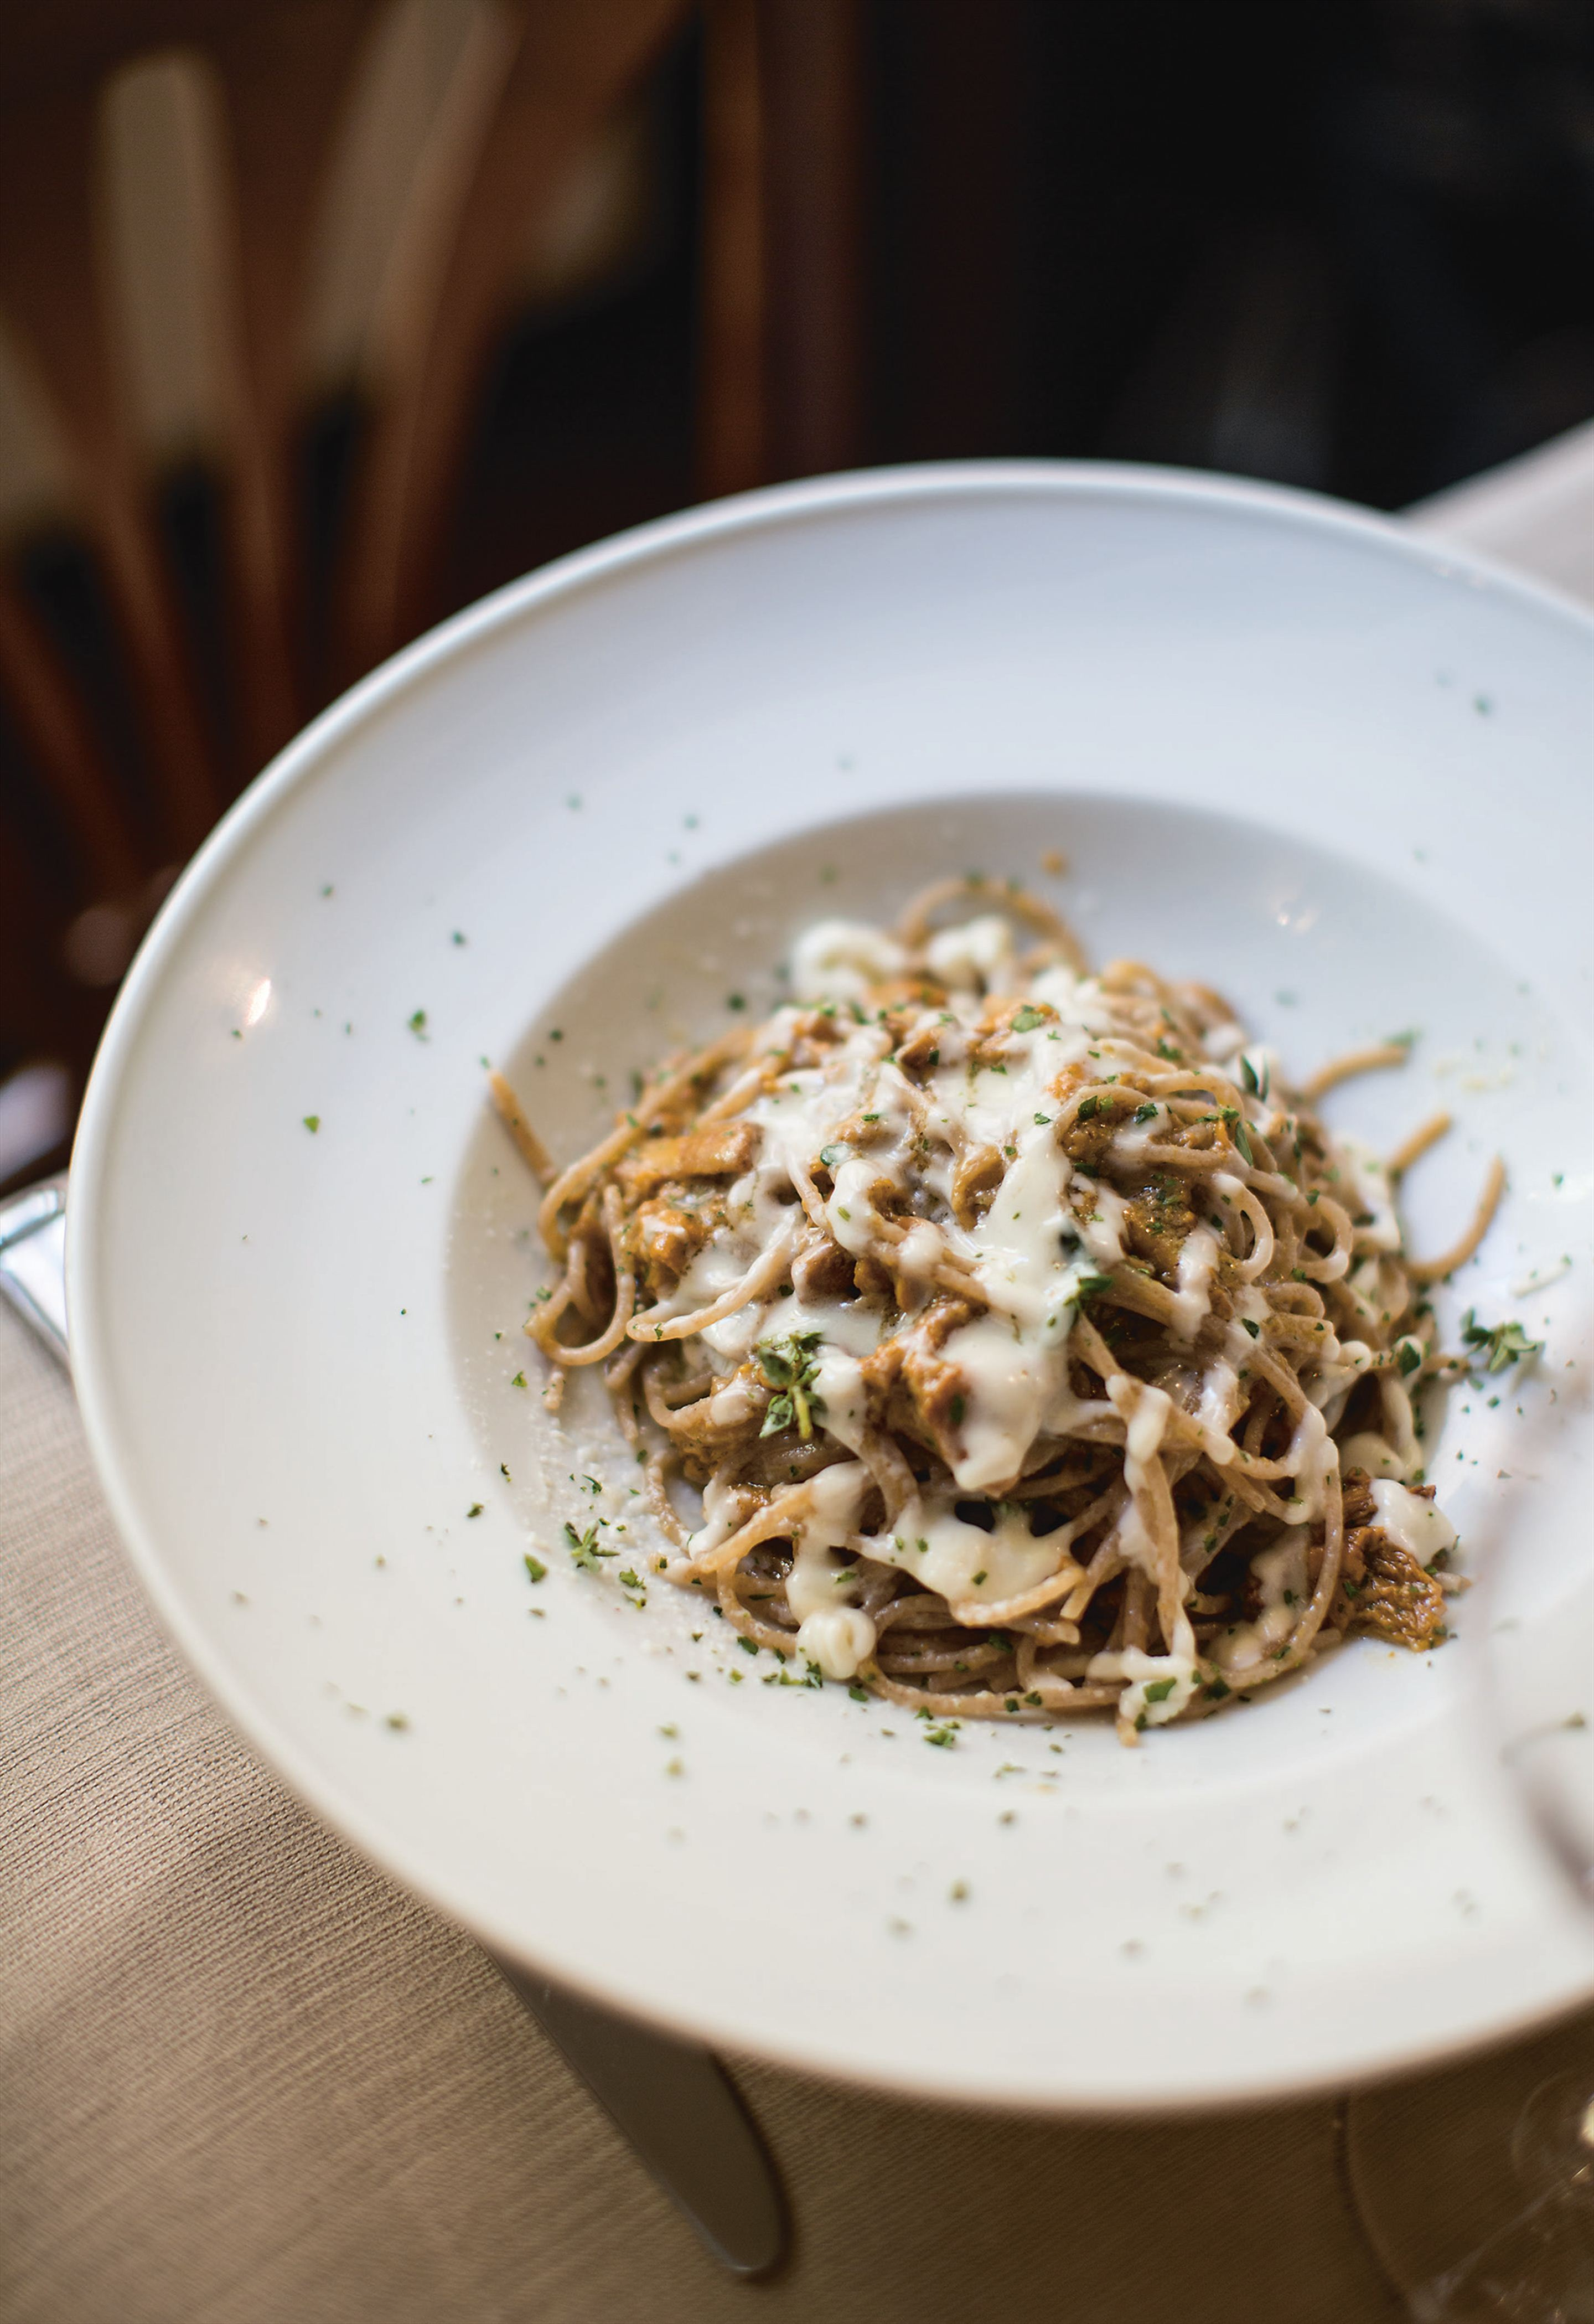 Spelt spaghetti with wild mushrooms and Parmesan cream